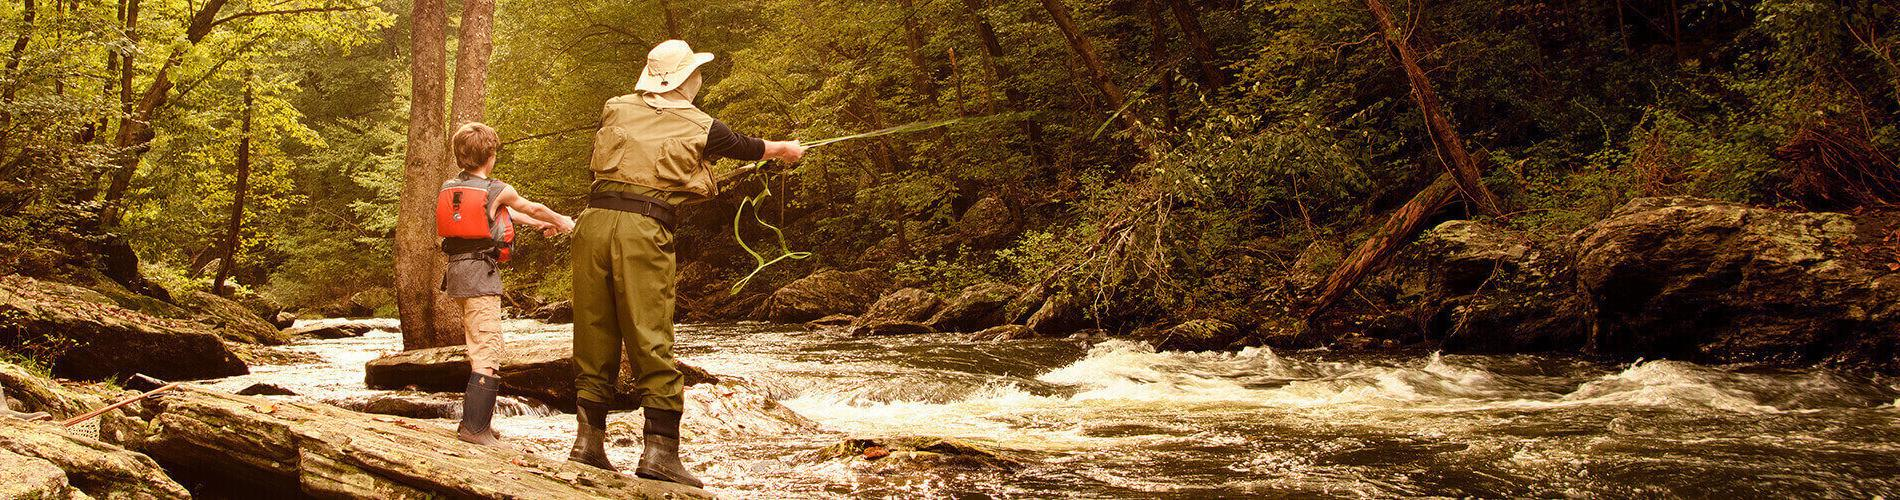 Fly fishing in Western Maryland